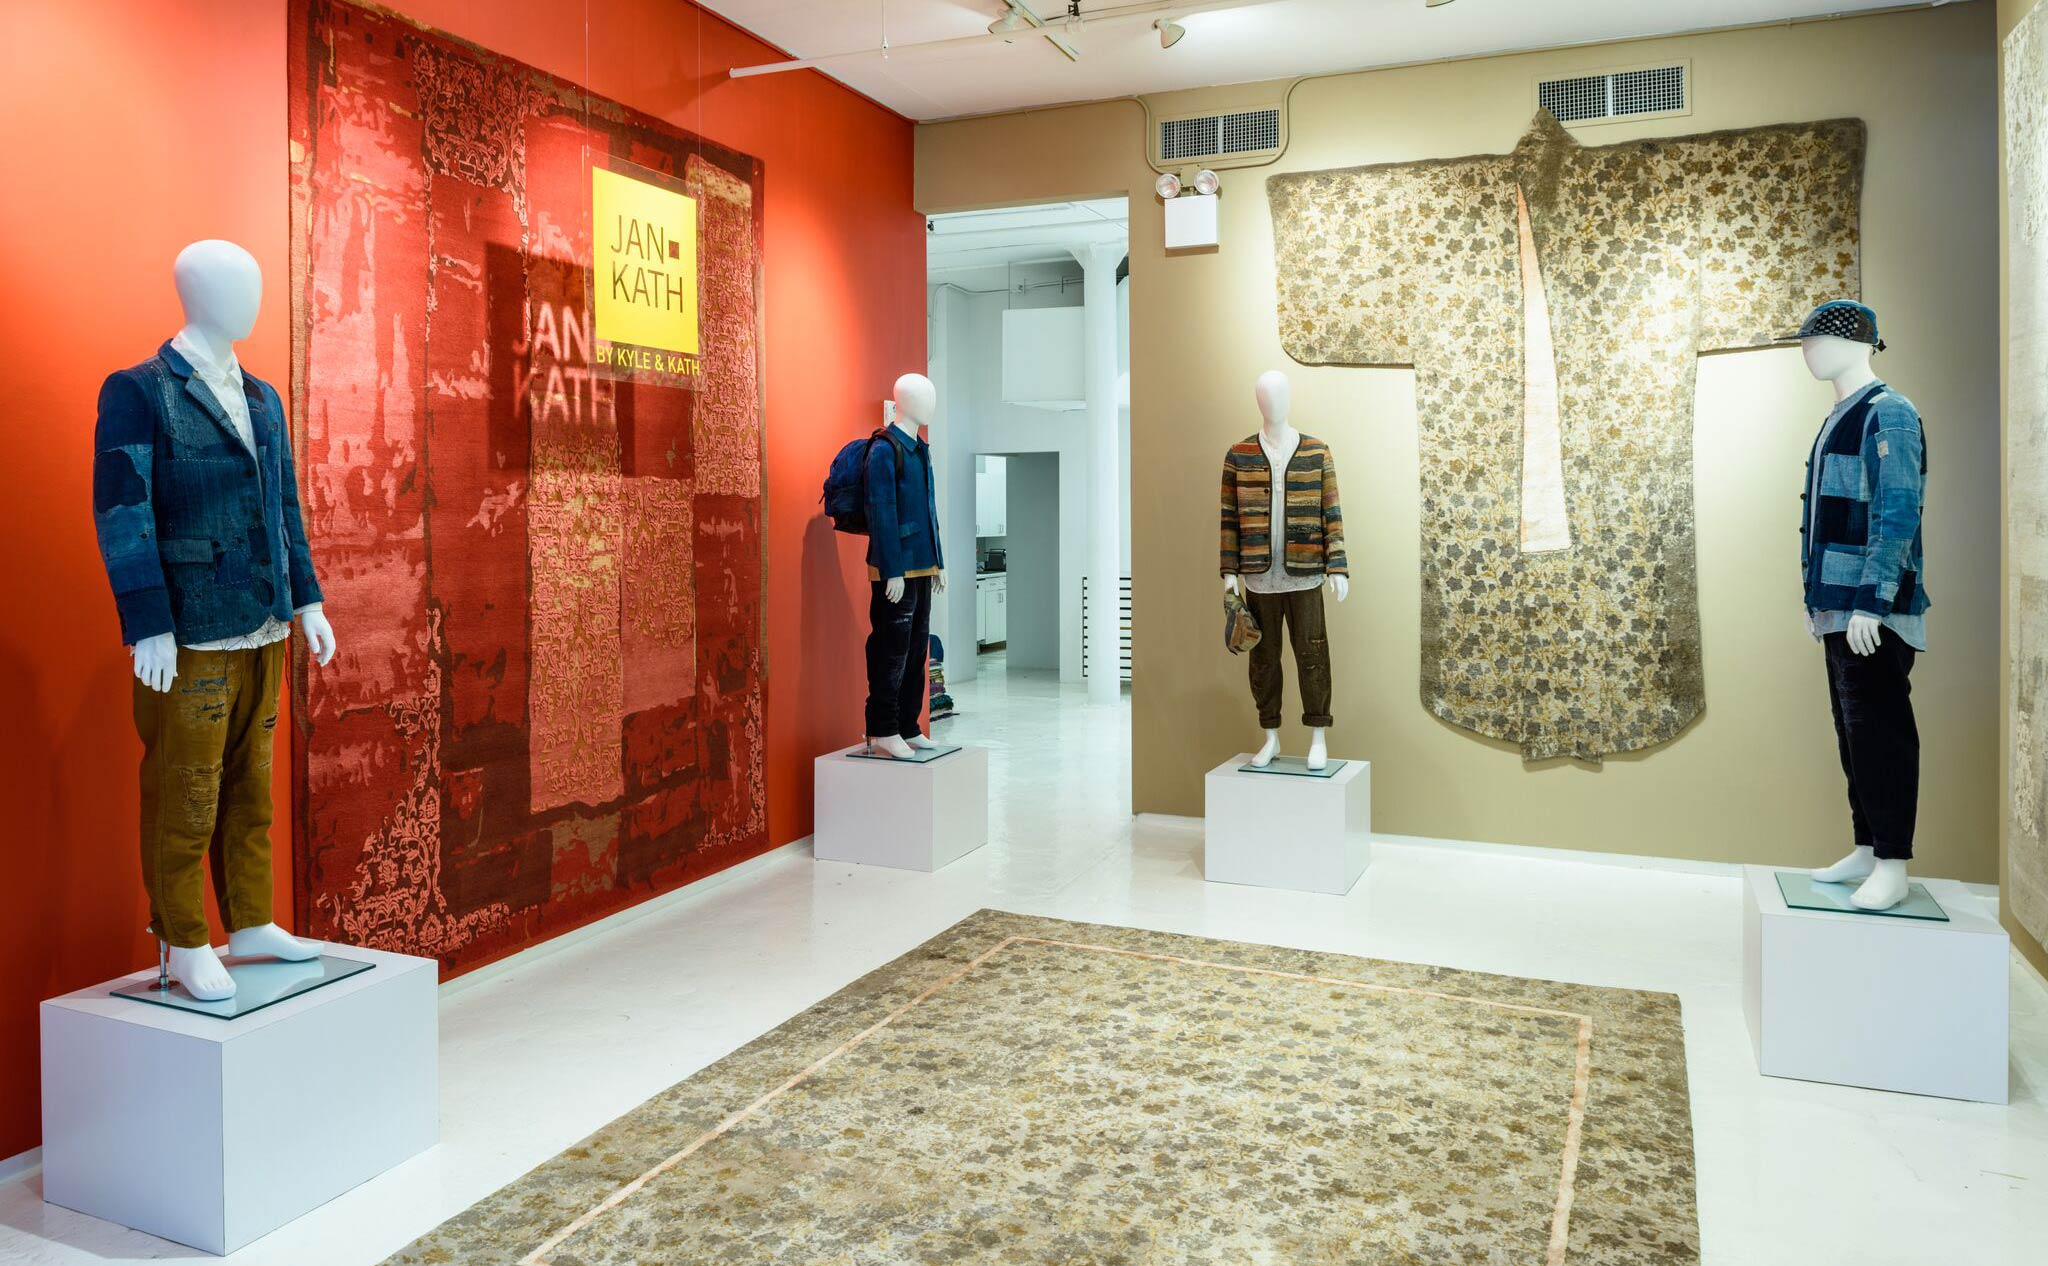 Mannequins dressed in contemporary bespoke Boro clothing from 'Kuon' ask 'What kind of exhibit are we in?' as they stand proud against an assortment of bold Jan Kath carpets including the whimsically shaped 'Dress Carpet' on the far wall. | Image courtesy of Jan Kath.